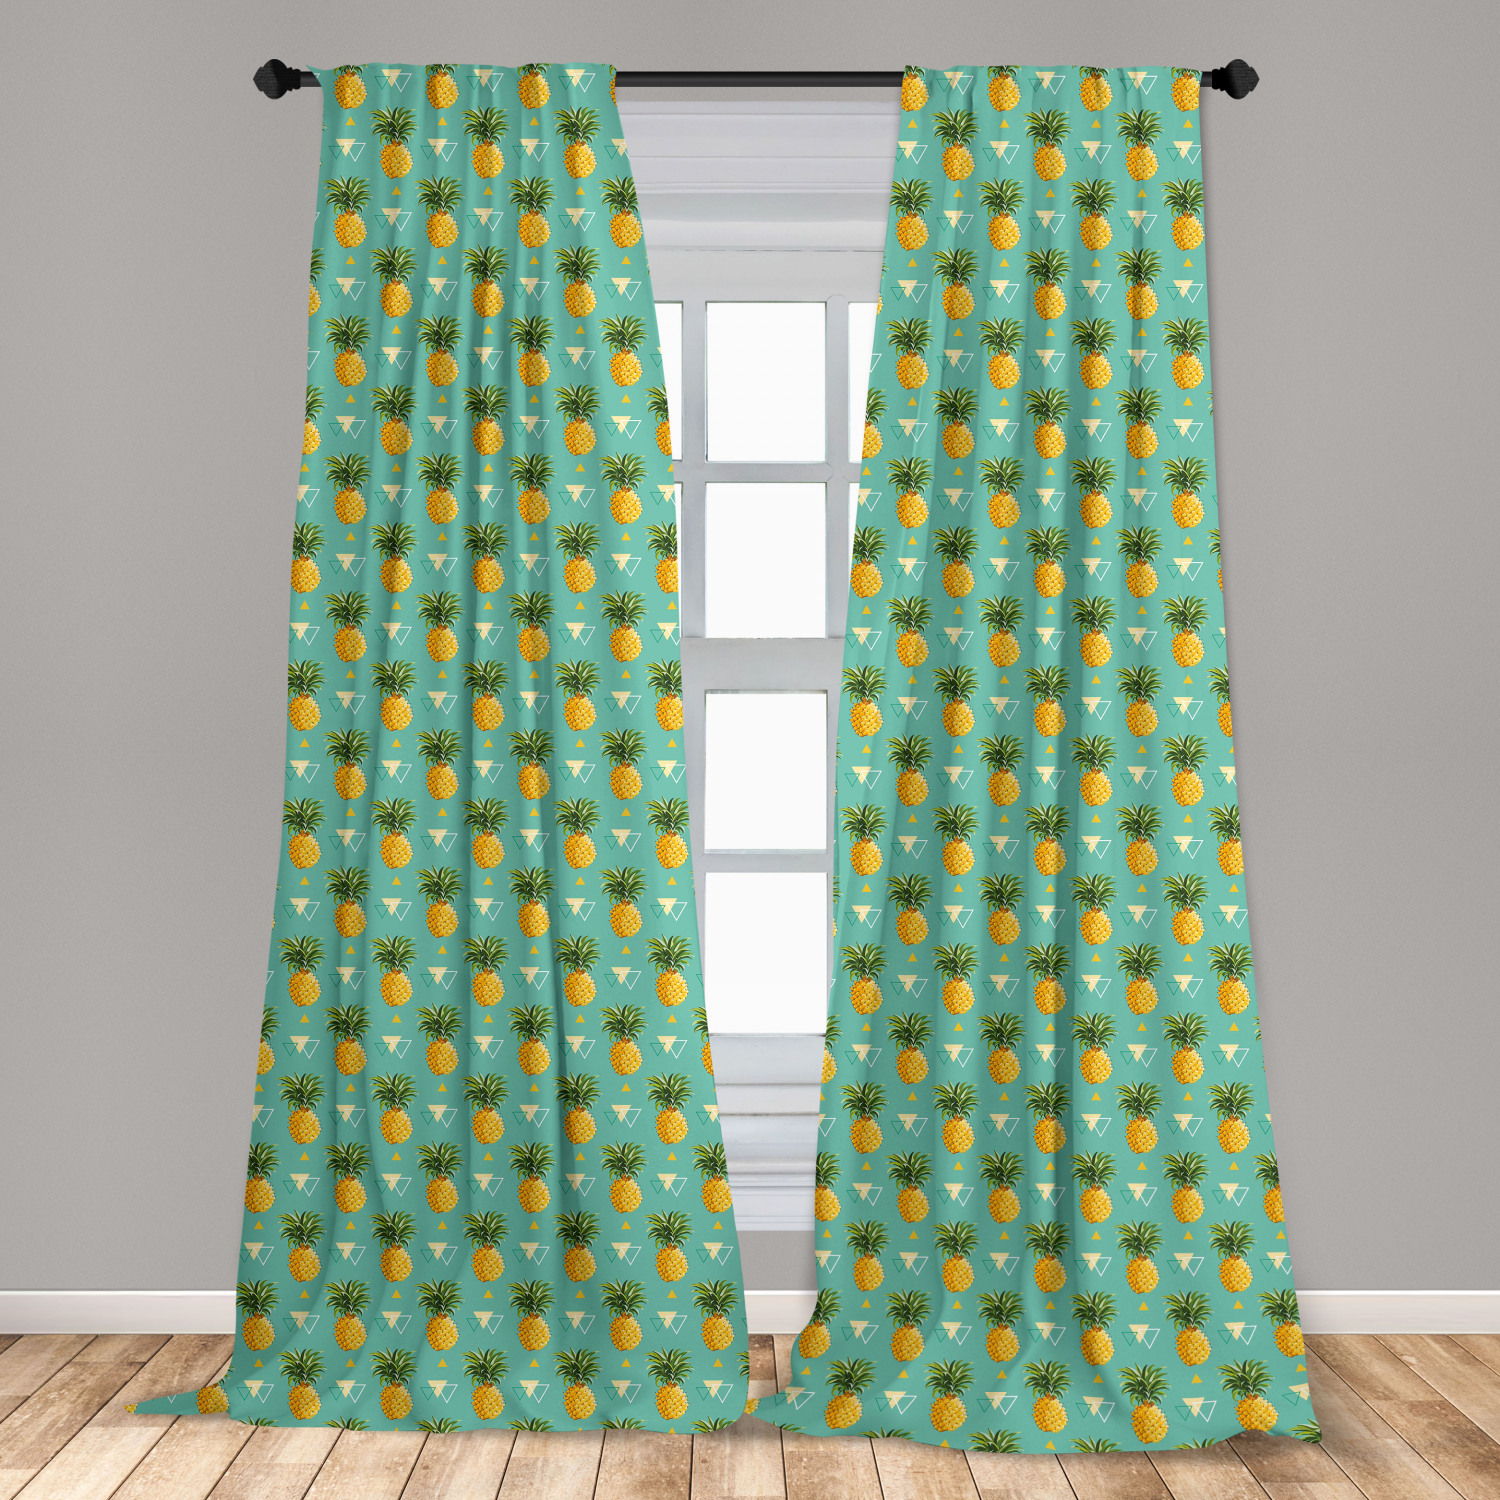 pineapple curtains 2 panels set geometric hipster design tropical climate fruits pattern retro summer window drapes for living room bedroom orange